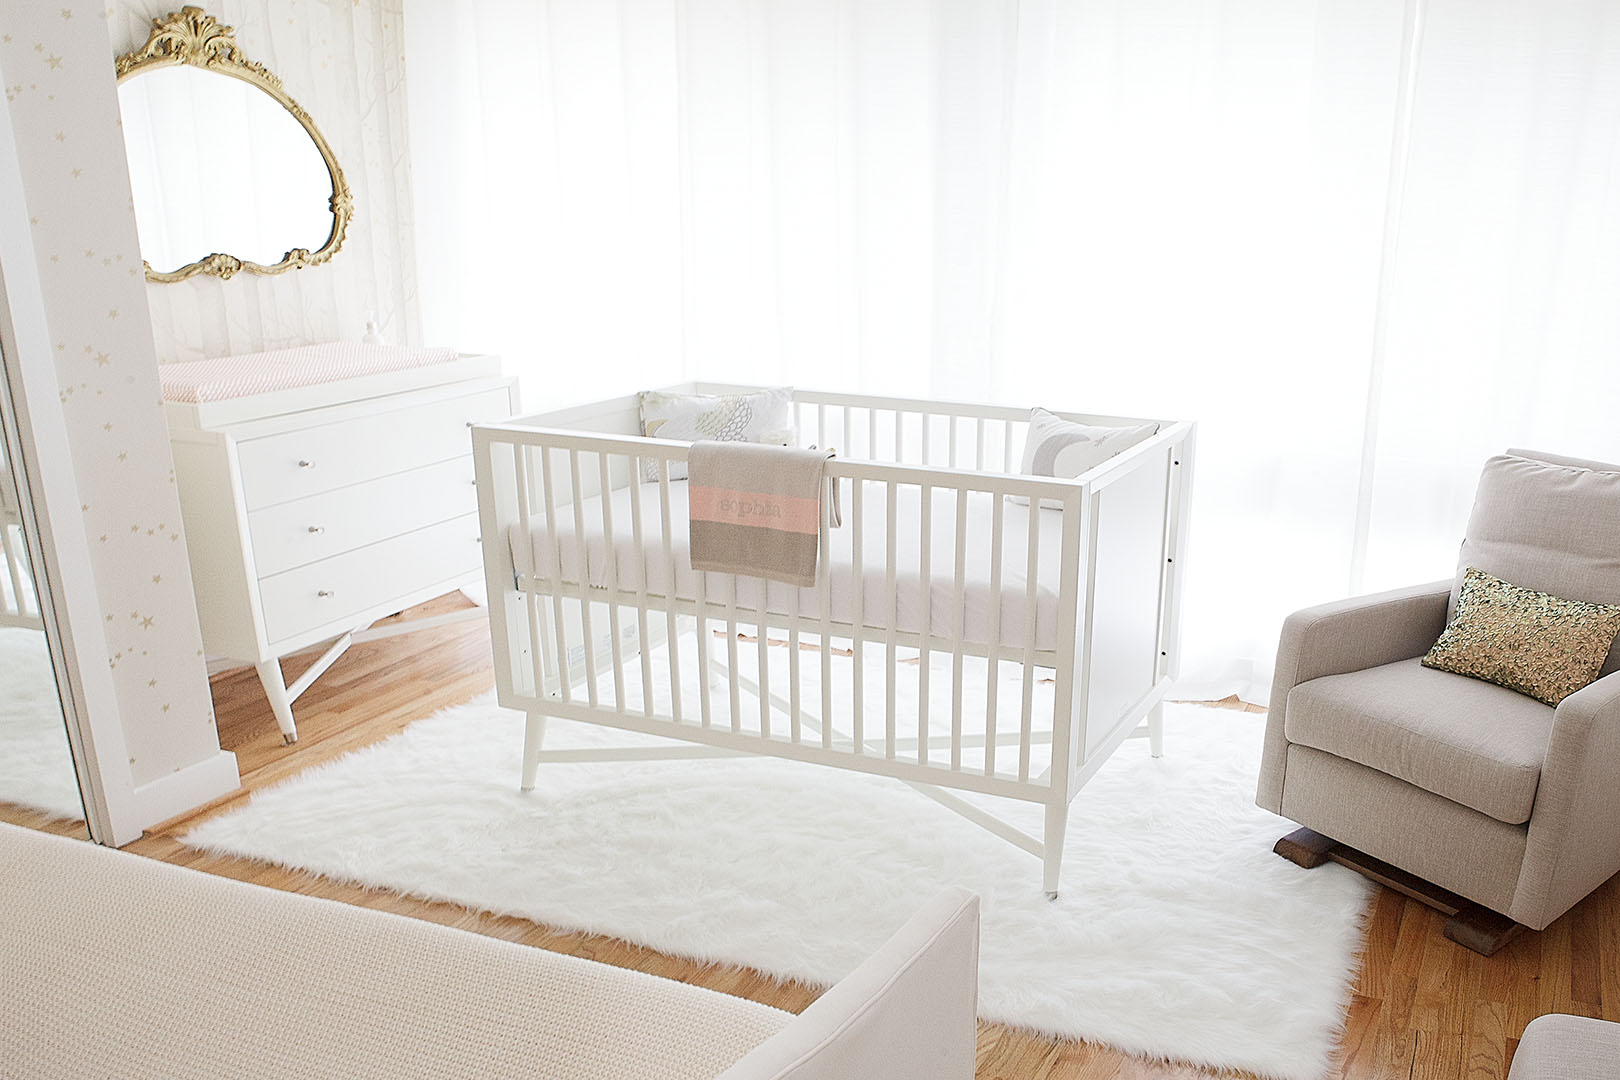 Baby bed design in Oakland, CA